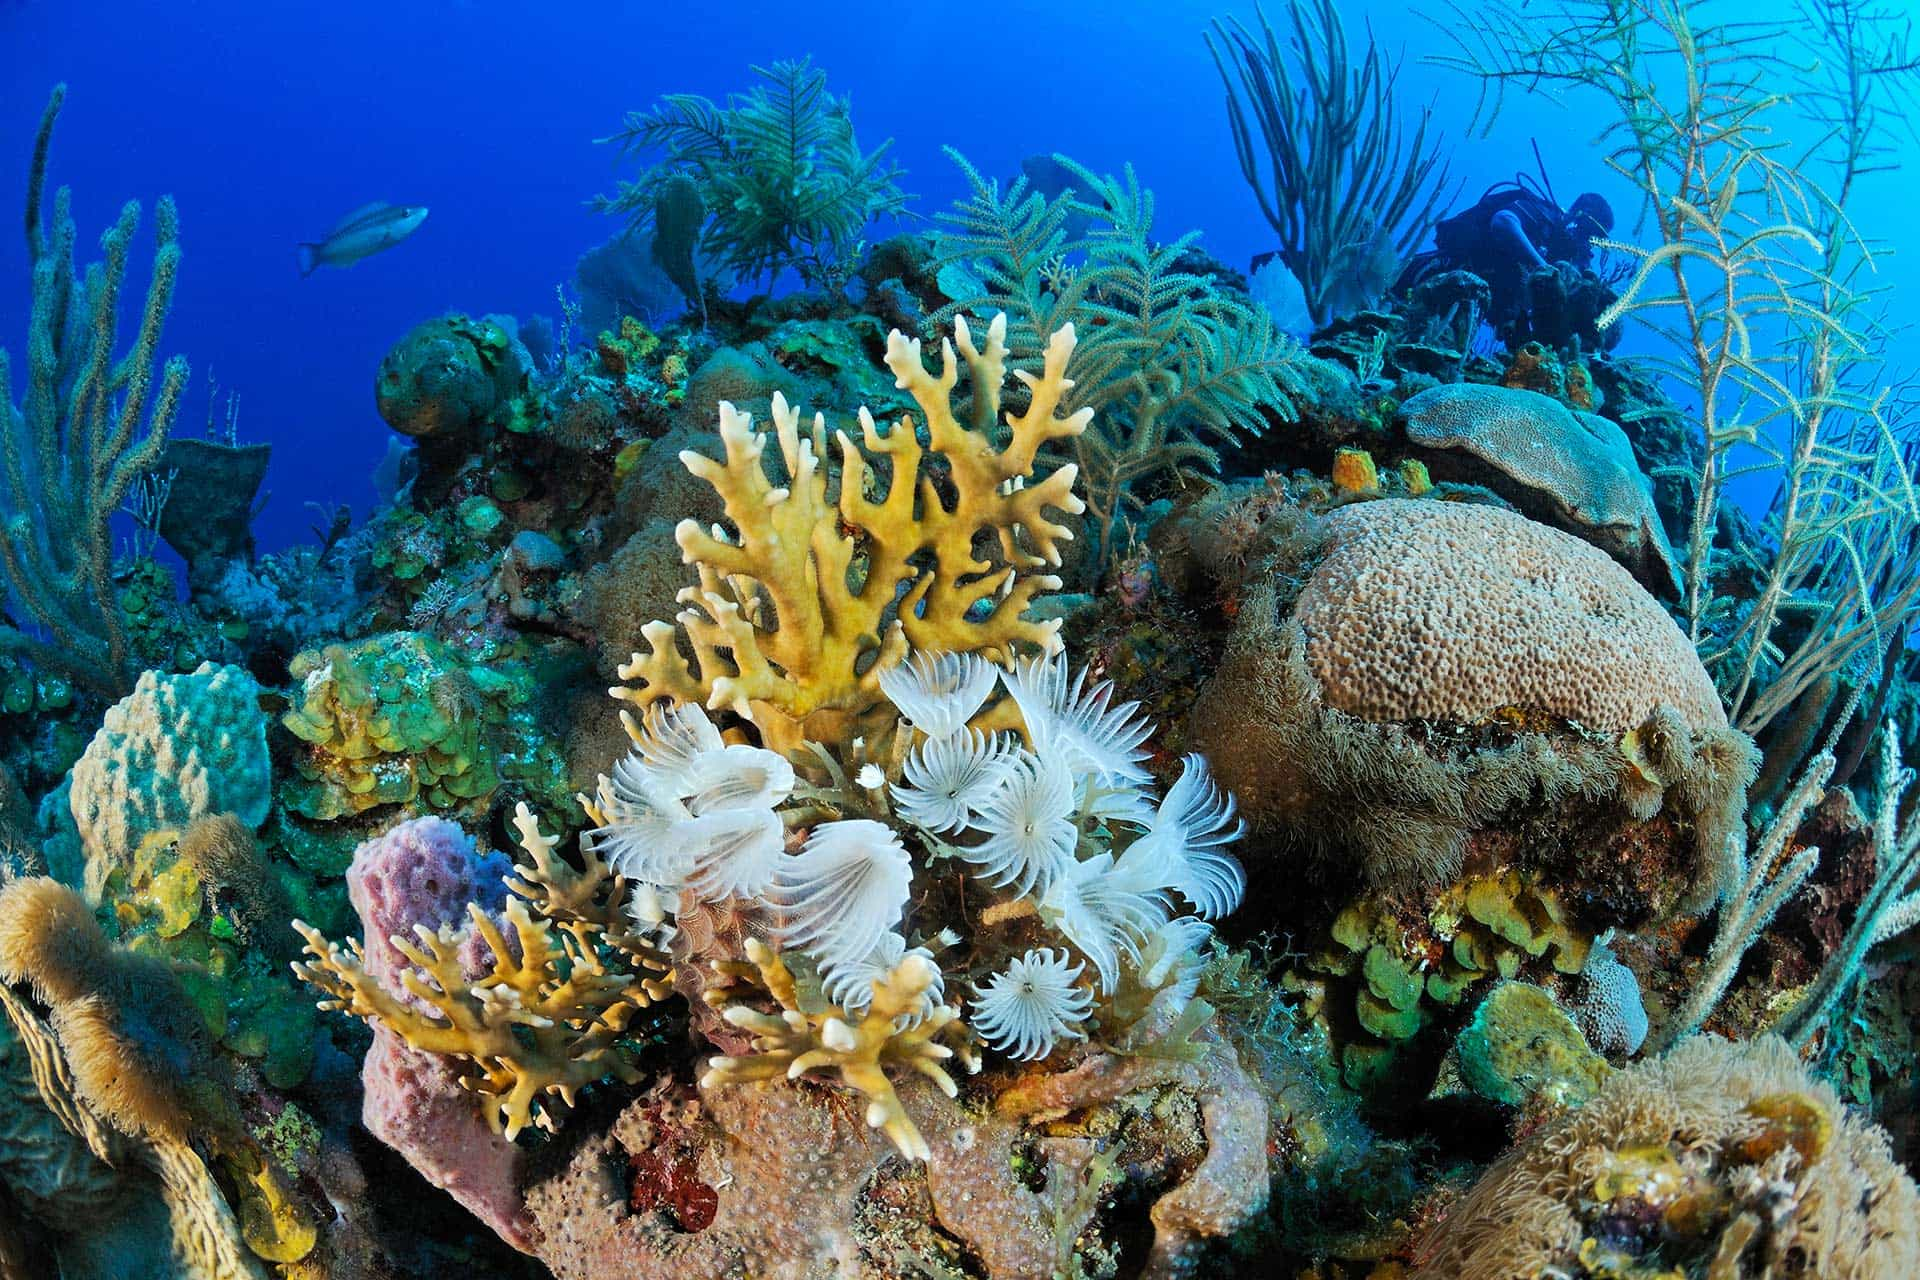 underwater scene with a colorful variety of corals, anemones, and fish